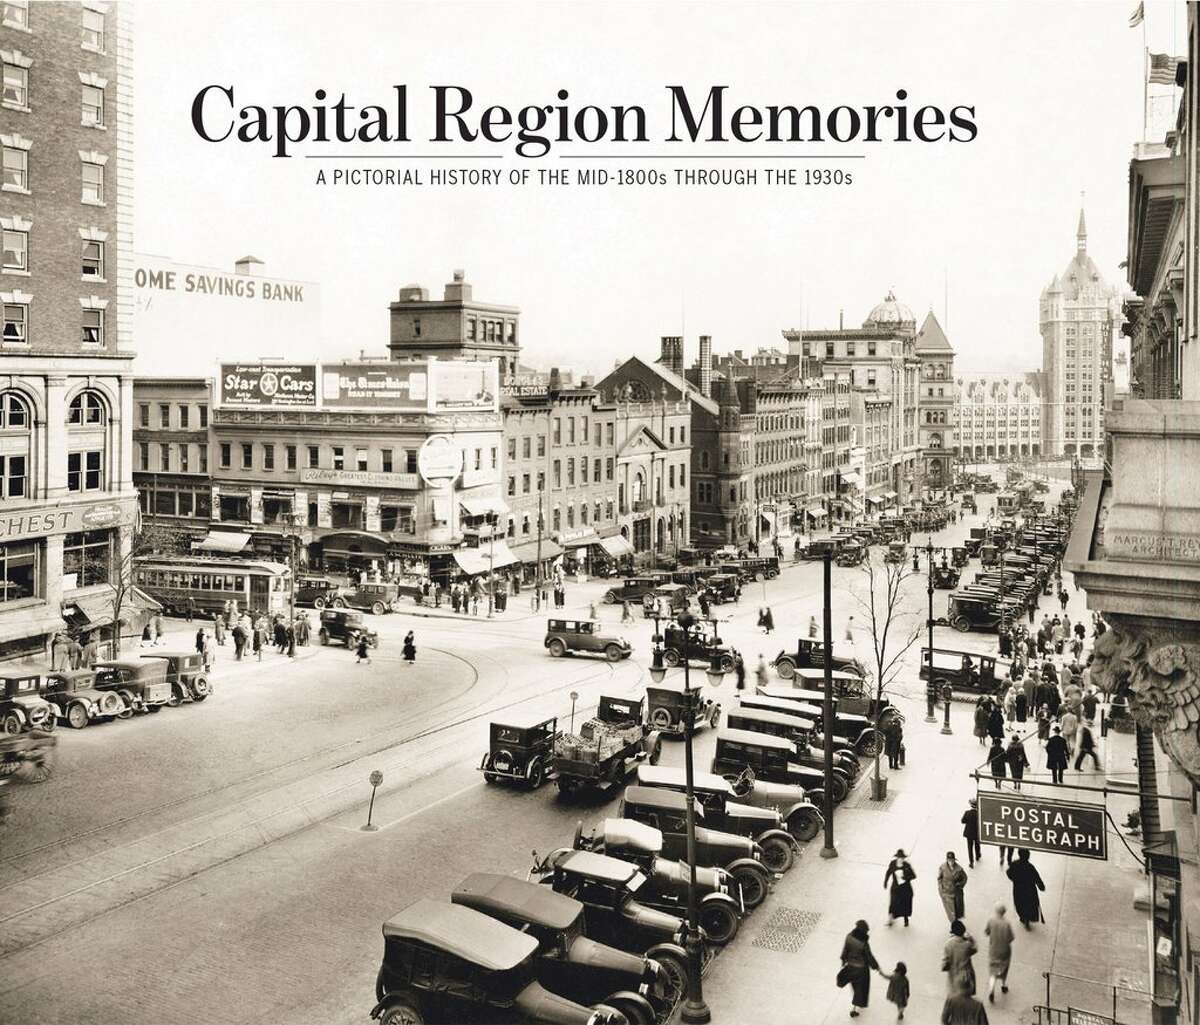 Times Union presents a unique glimpse in and around Albany County, Schenectady County, Saratoga County and Rensselaer County history through stunning photographs. This hardcover, heirloom-quality coffee-table book truly captures the rich history of the area from late 1800s through 1939.